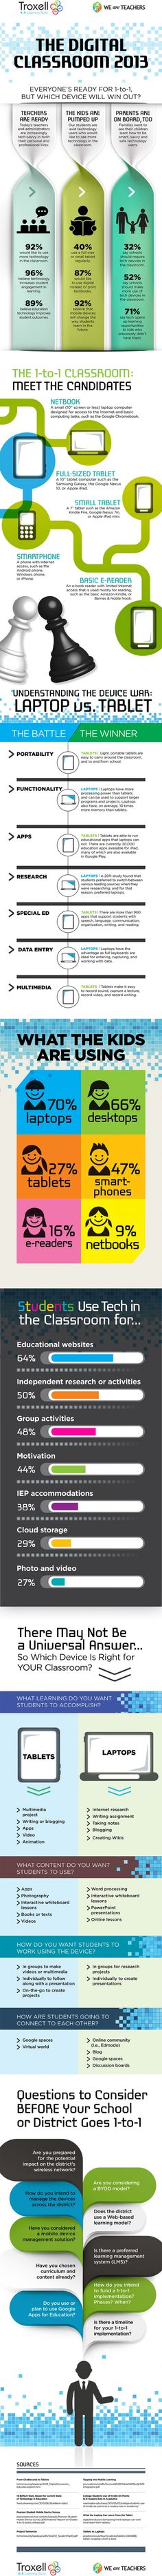 What Technology And Devises Are Being Deployed In The Digital Classroom In 2013? #infographic